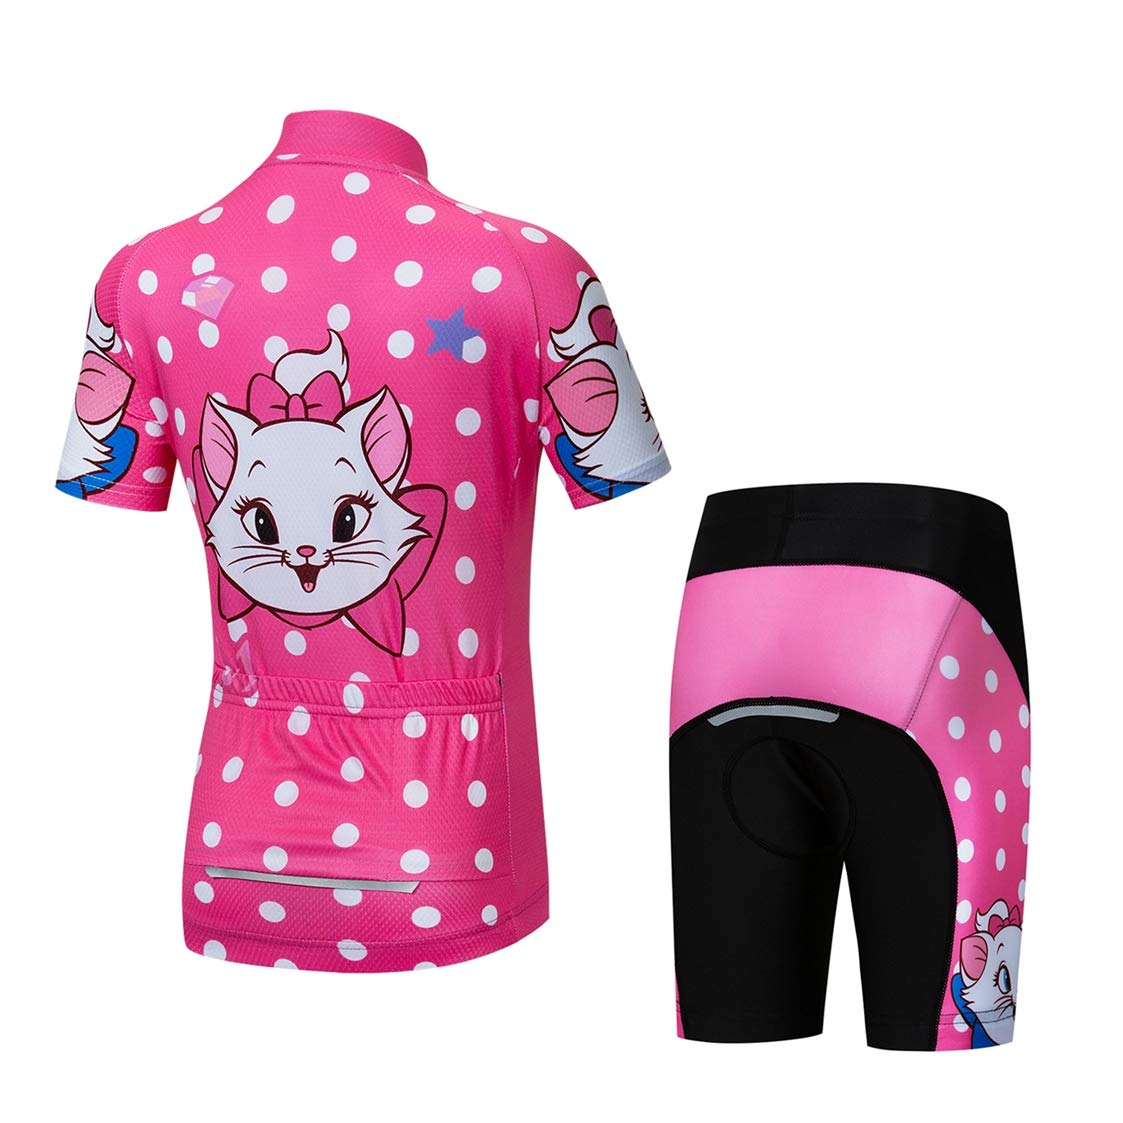 053ce1aeb26 weimostar Kids Cycling Jersey Set Bike Jersey Shorts Children Road Mountain  MTB Bicycle Clothes Top bottom  Amazon.co.uk  Sports   Outdoors